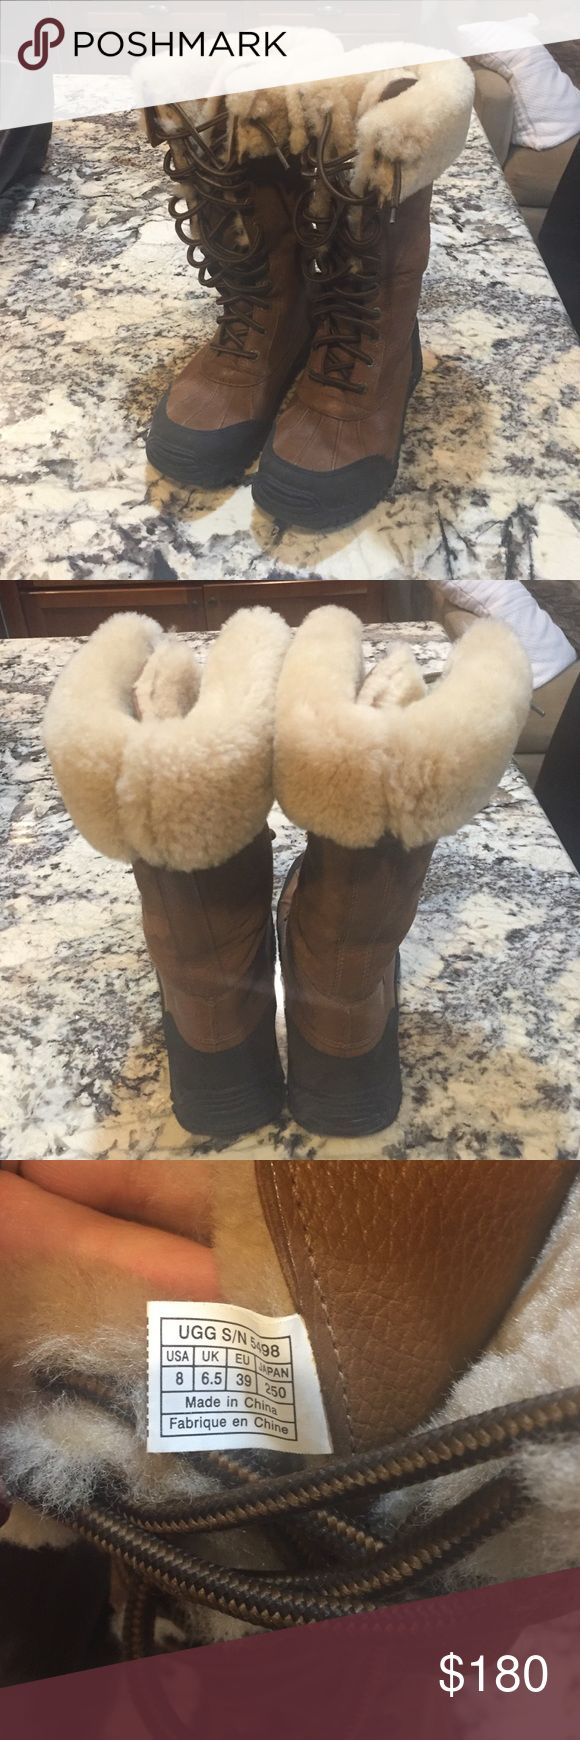 Ugg Adirondack tall boots Ugg Adirondack boots. $300 brand new. They are in perfect shape and only sign of wear is on the tip of one shoelace. Only worn a couple times and don't live in a place with snow. UGG Shoes Winter & Rain Boots